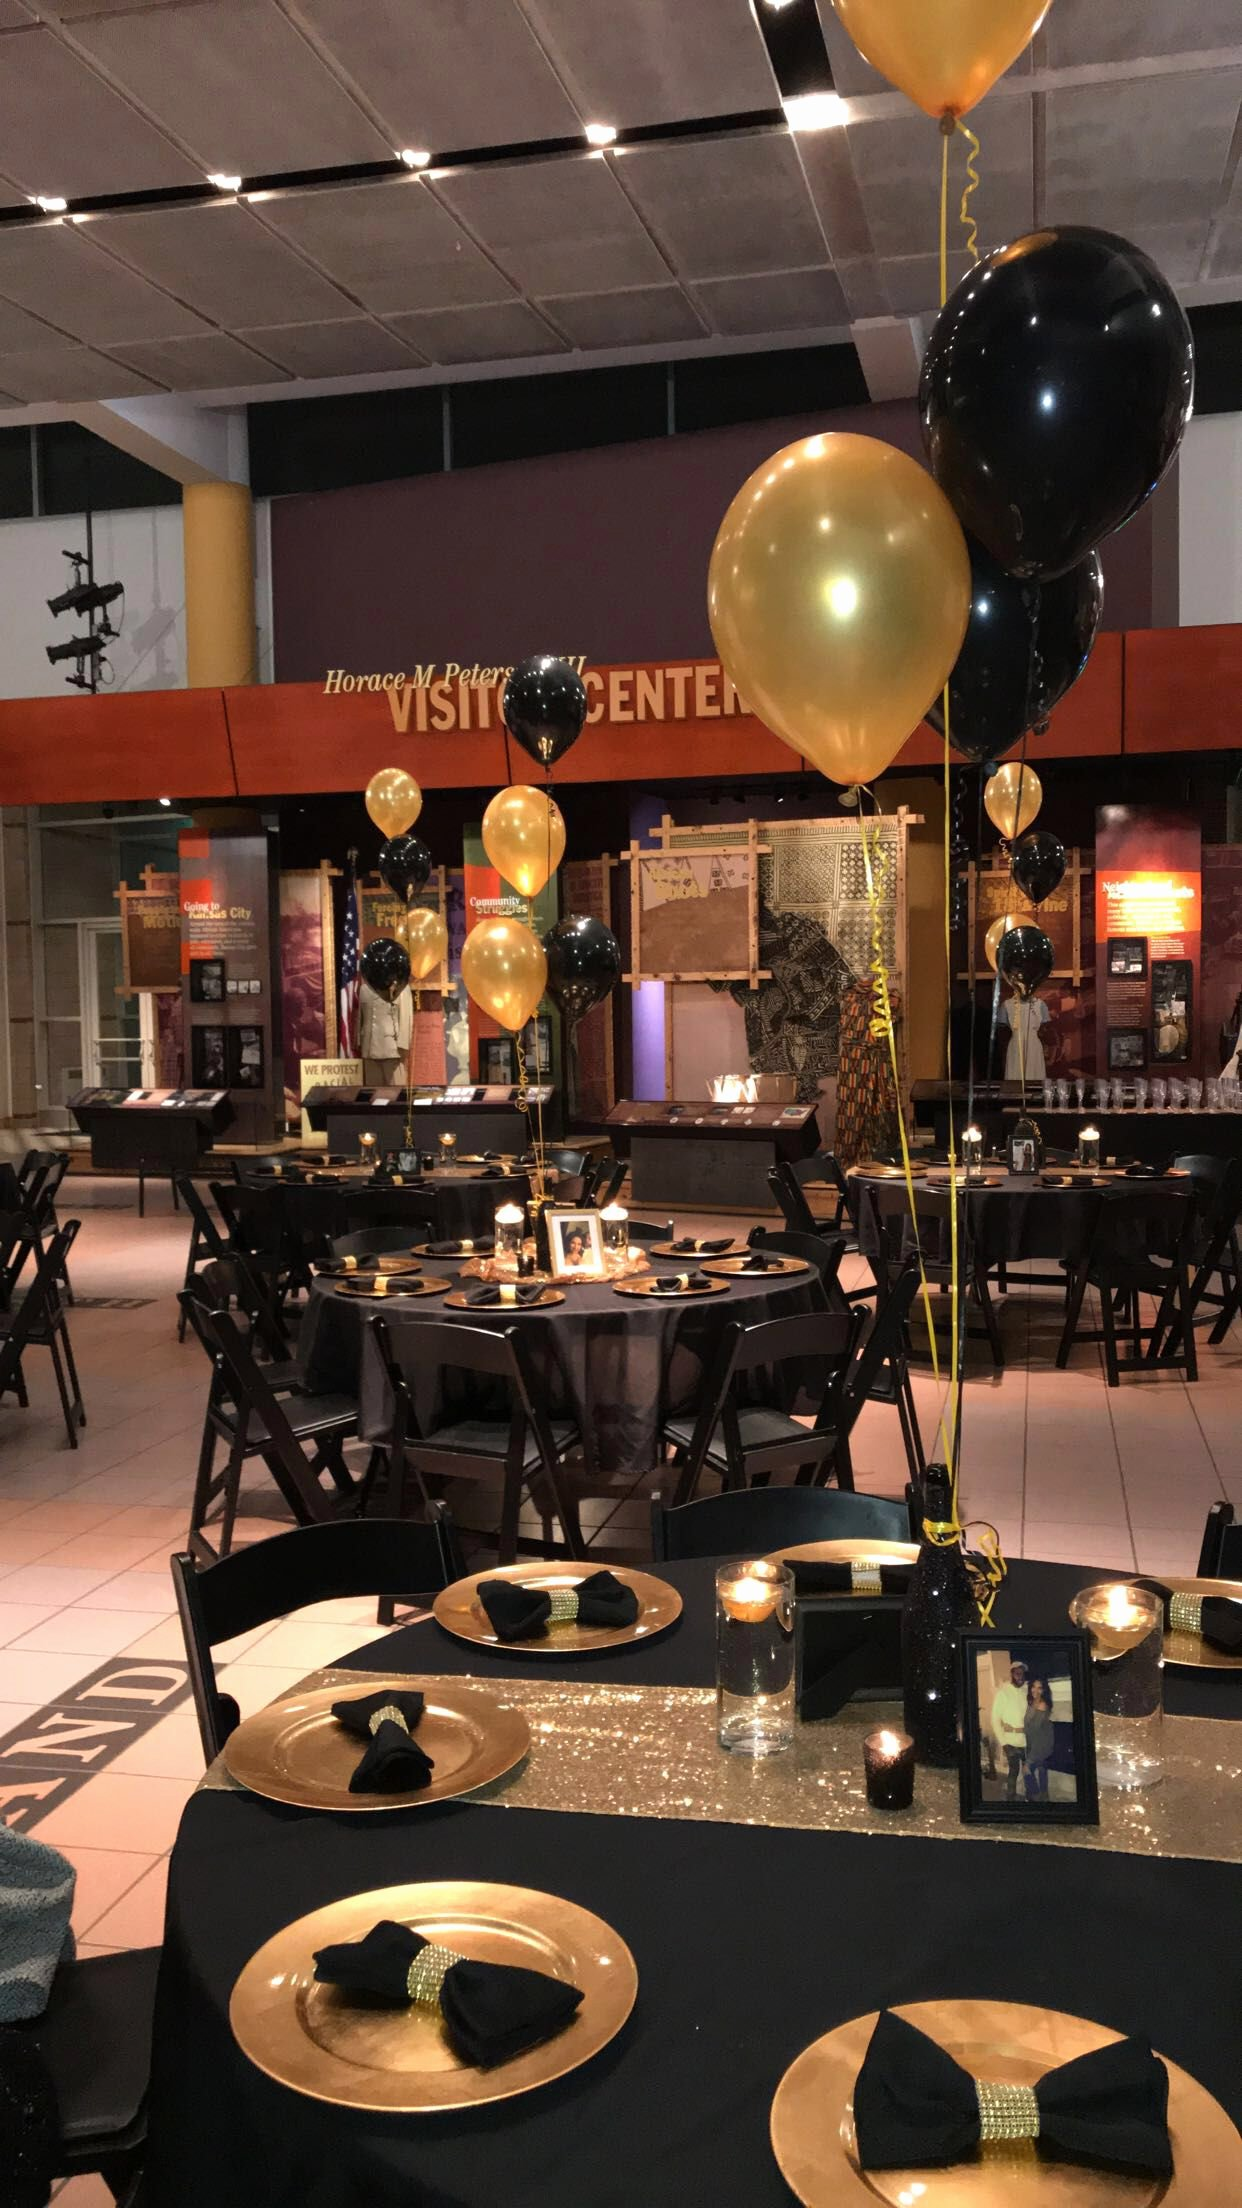 Birthday Decoration Ideas Black and Gold Elegant Black and Gold Table Decor